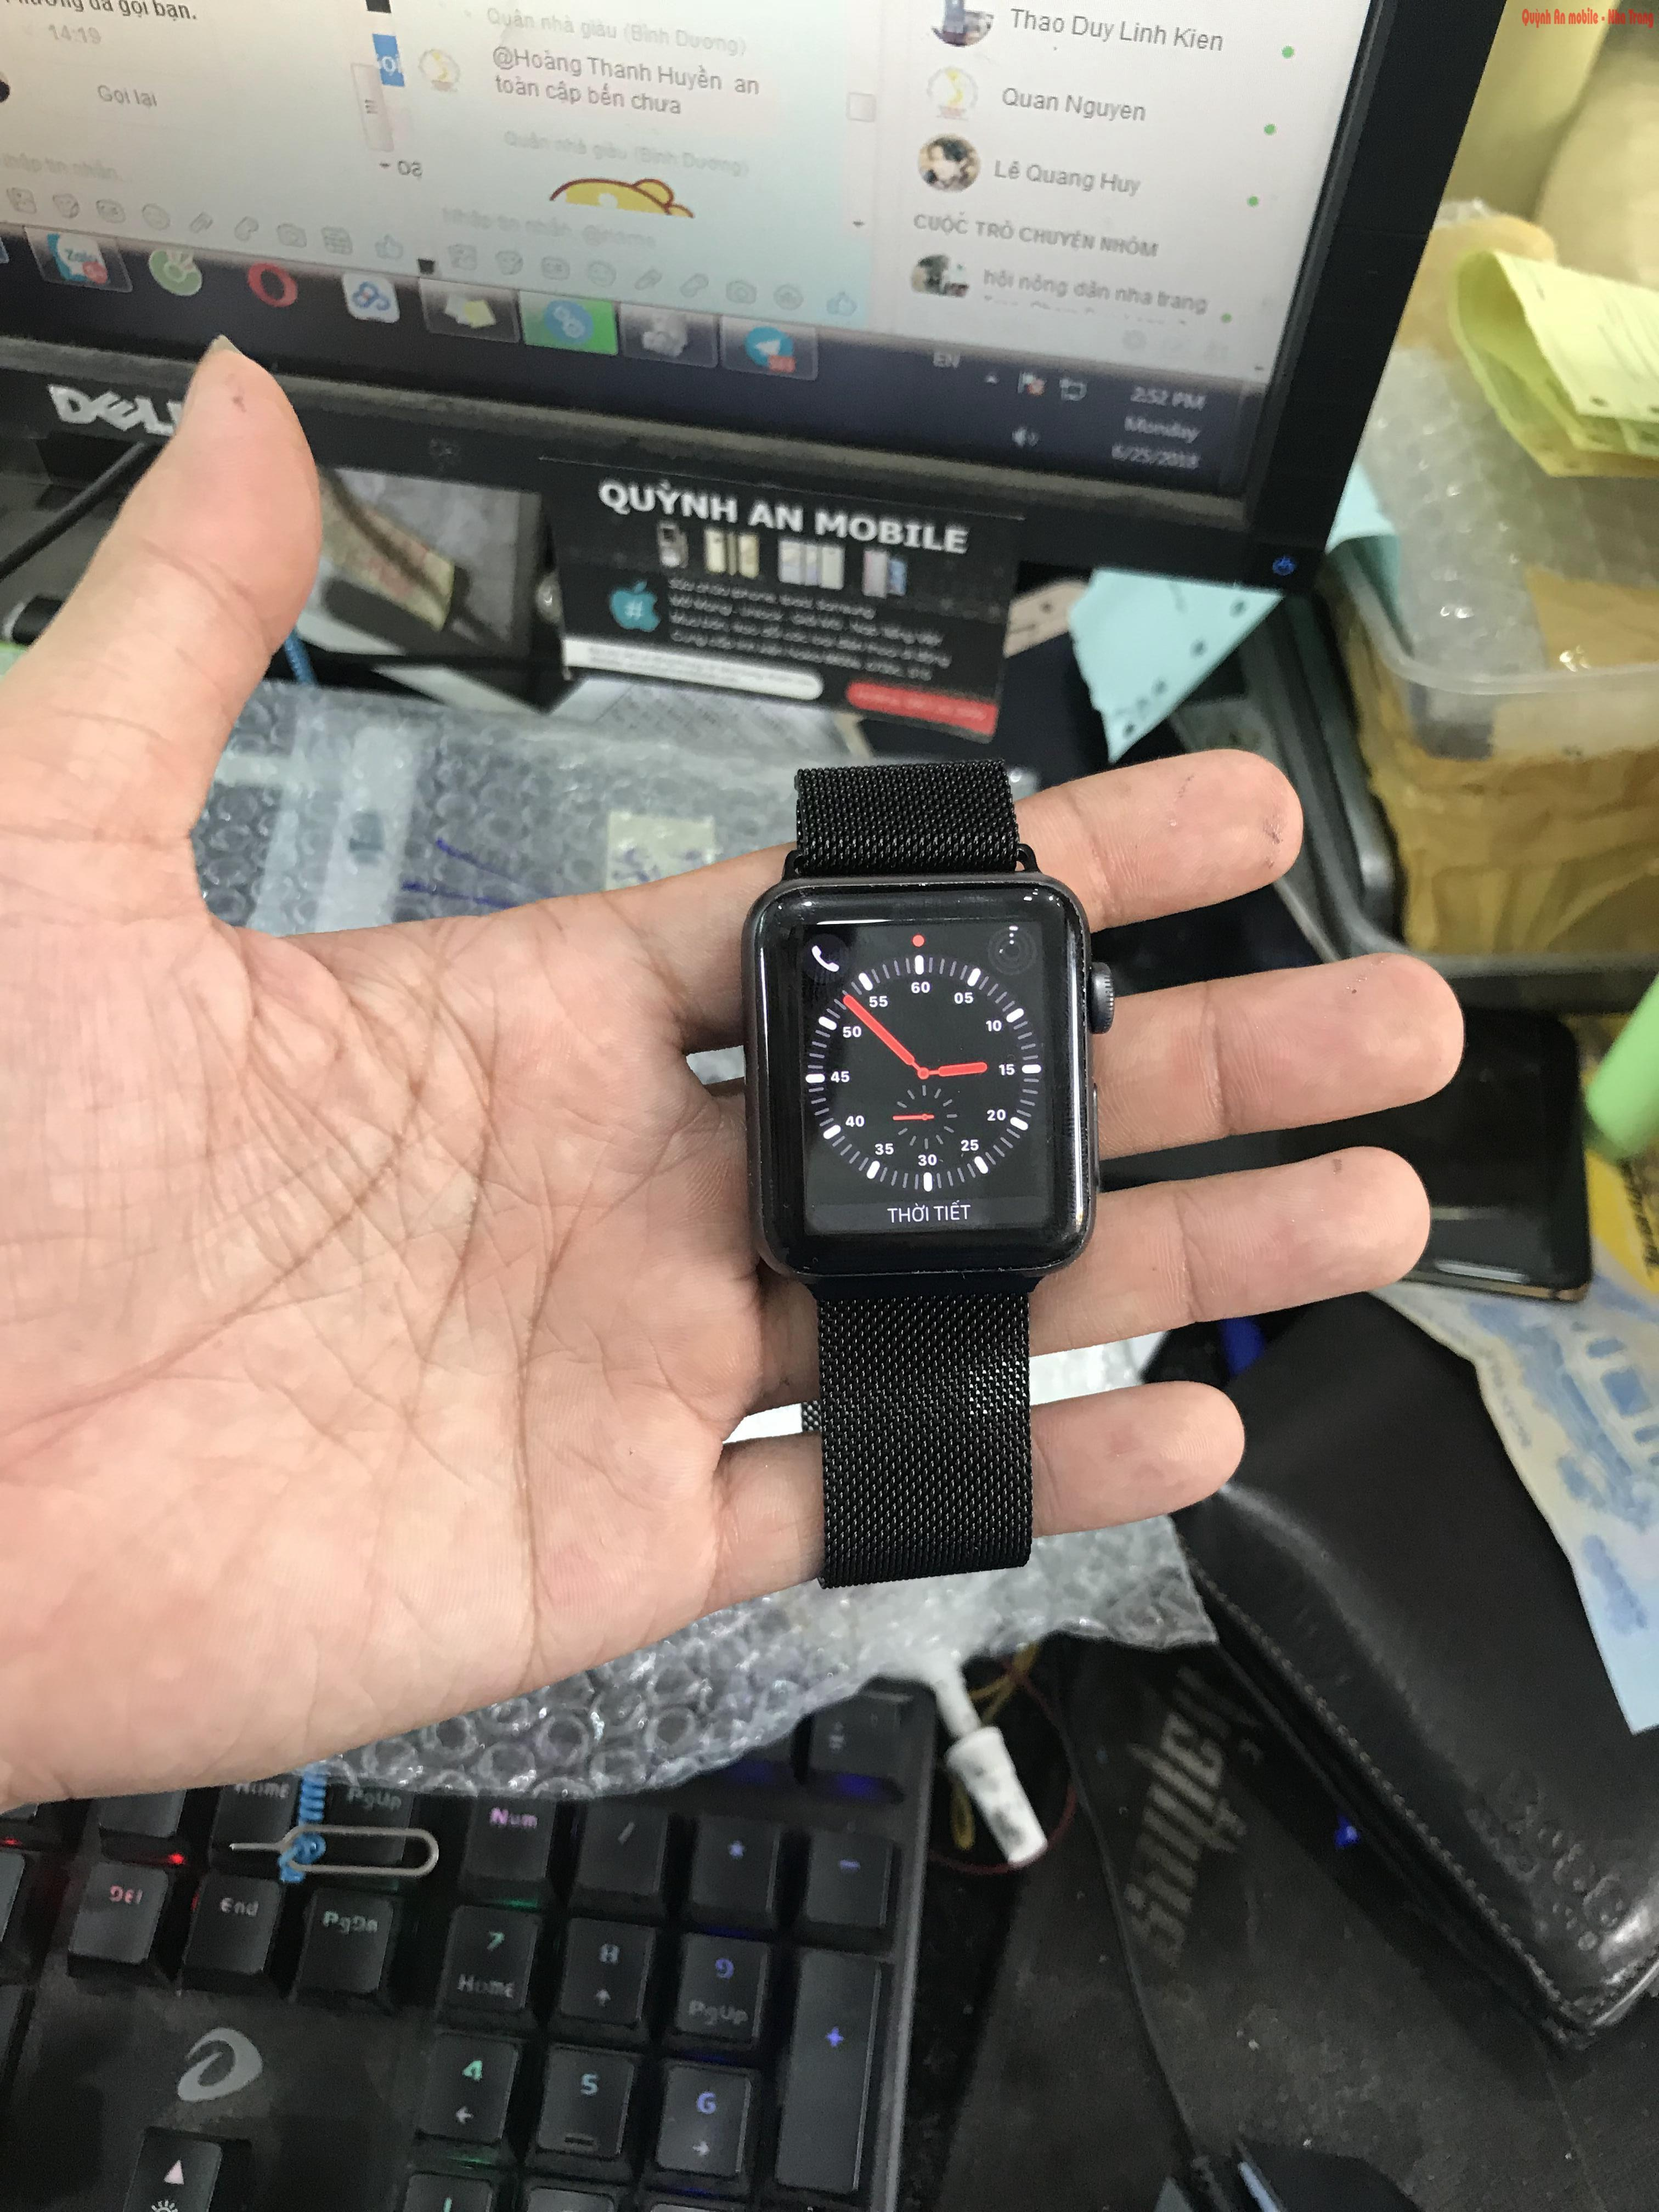 Replace and replace apple watch seri 2/3 screen in Nha Trang call 0907623999 Thay mặt kính cảm ứng apple watch seri 2/3 tại Nha Trang liên hệ 0907623999 Quỳnh An Mobile